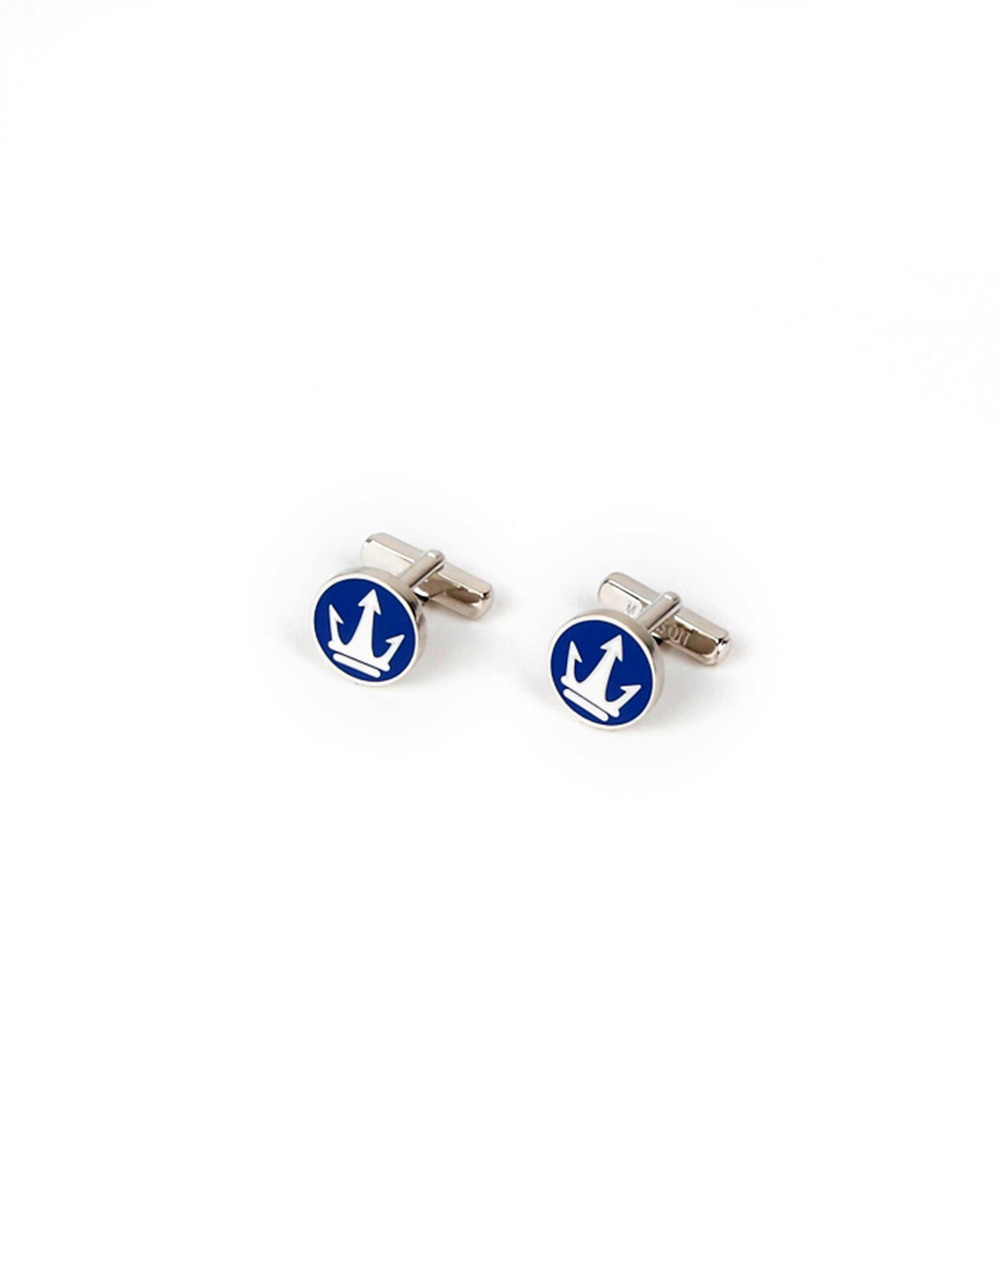 Blue and white round metallic cufflinks